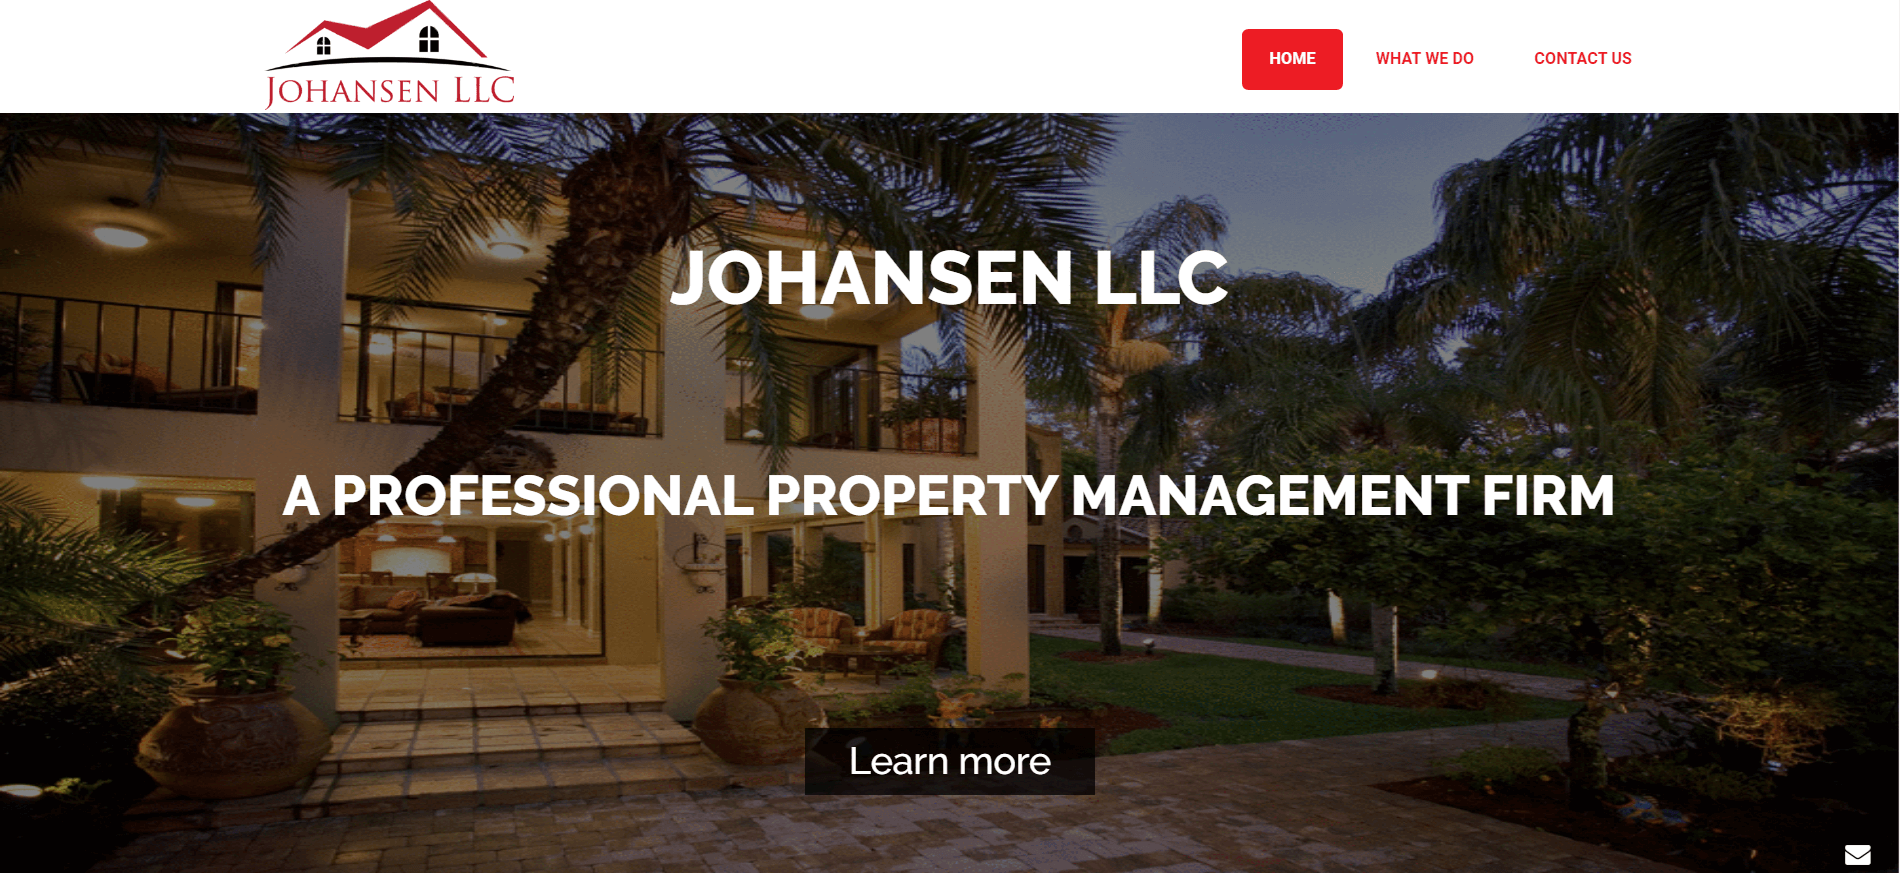 johansen llc splash page